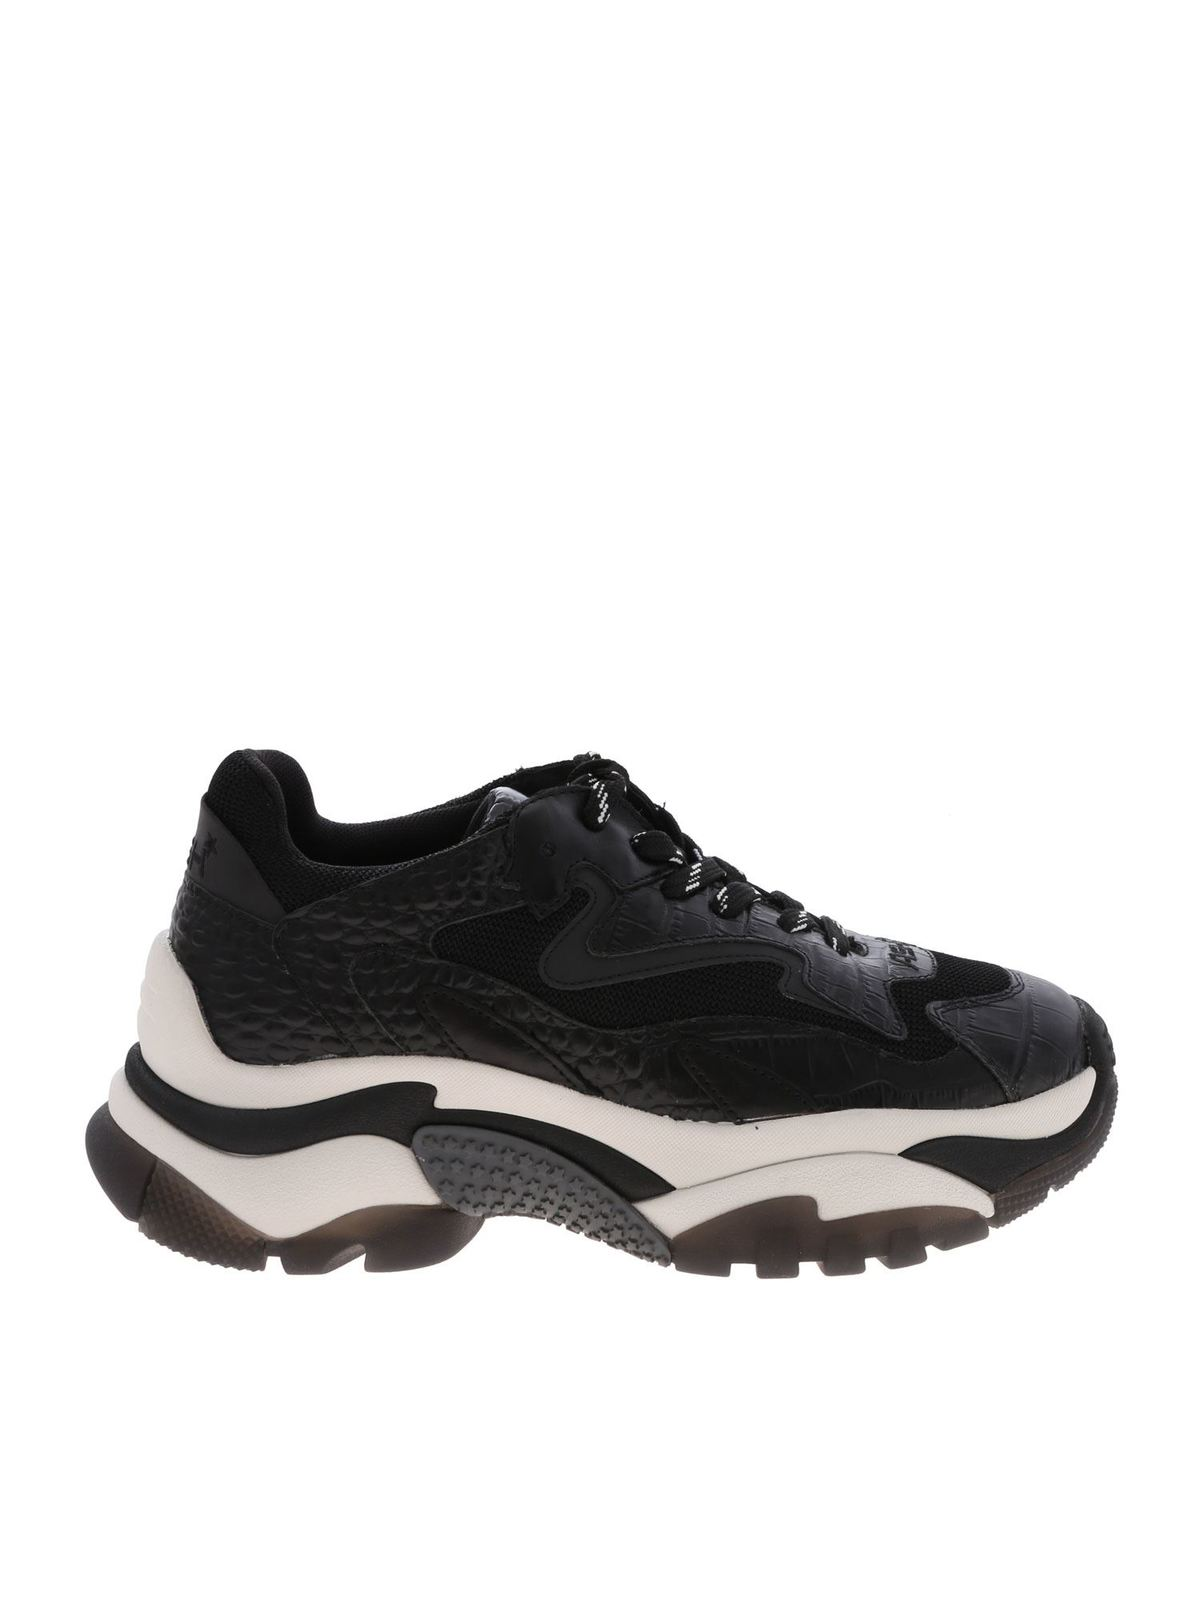 Ash Zapatillas Negro Zapatillas ADDICTFW19S126379003